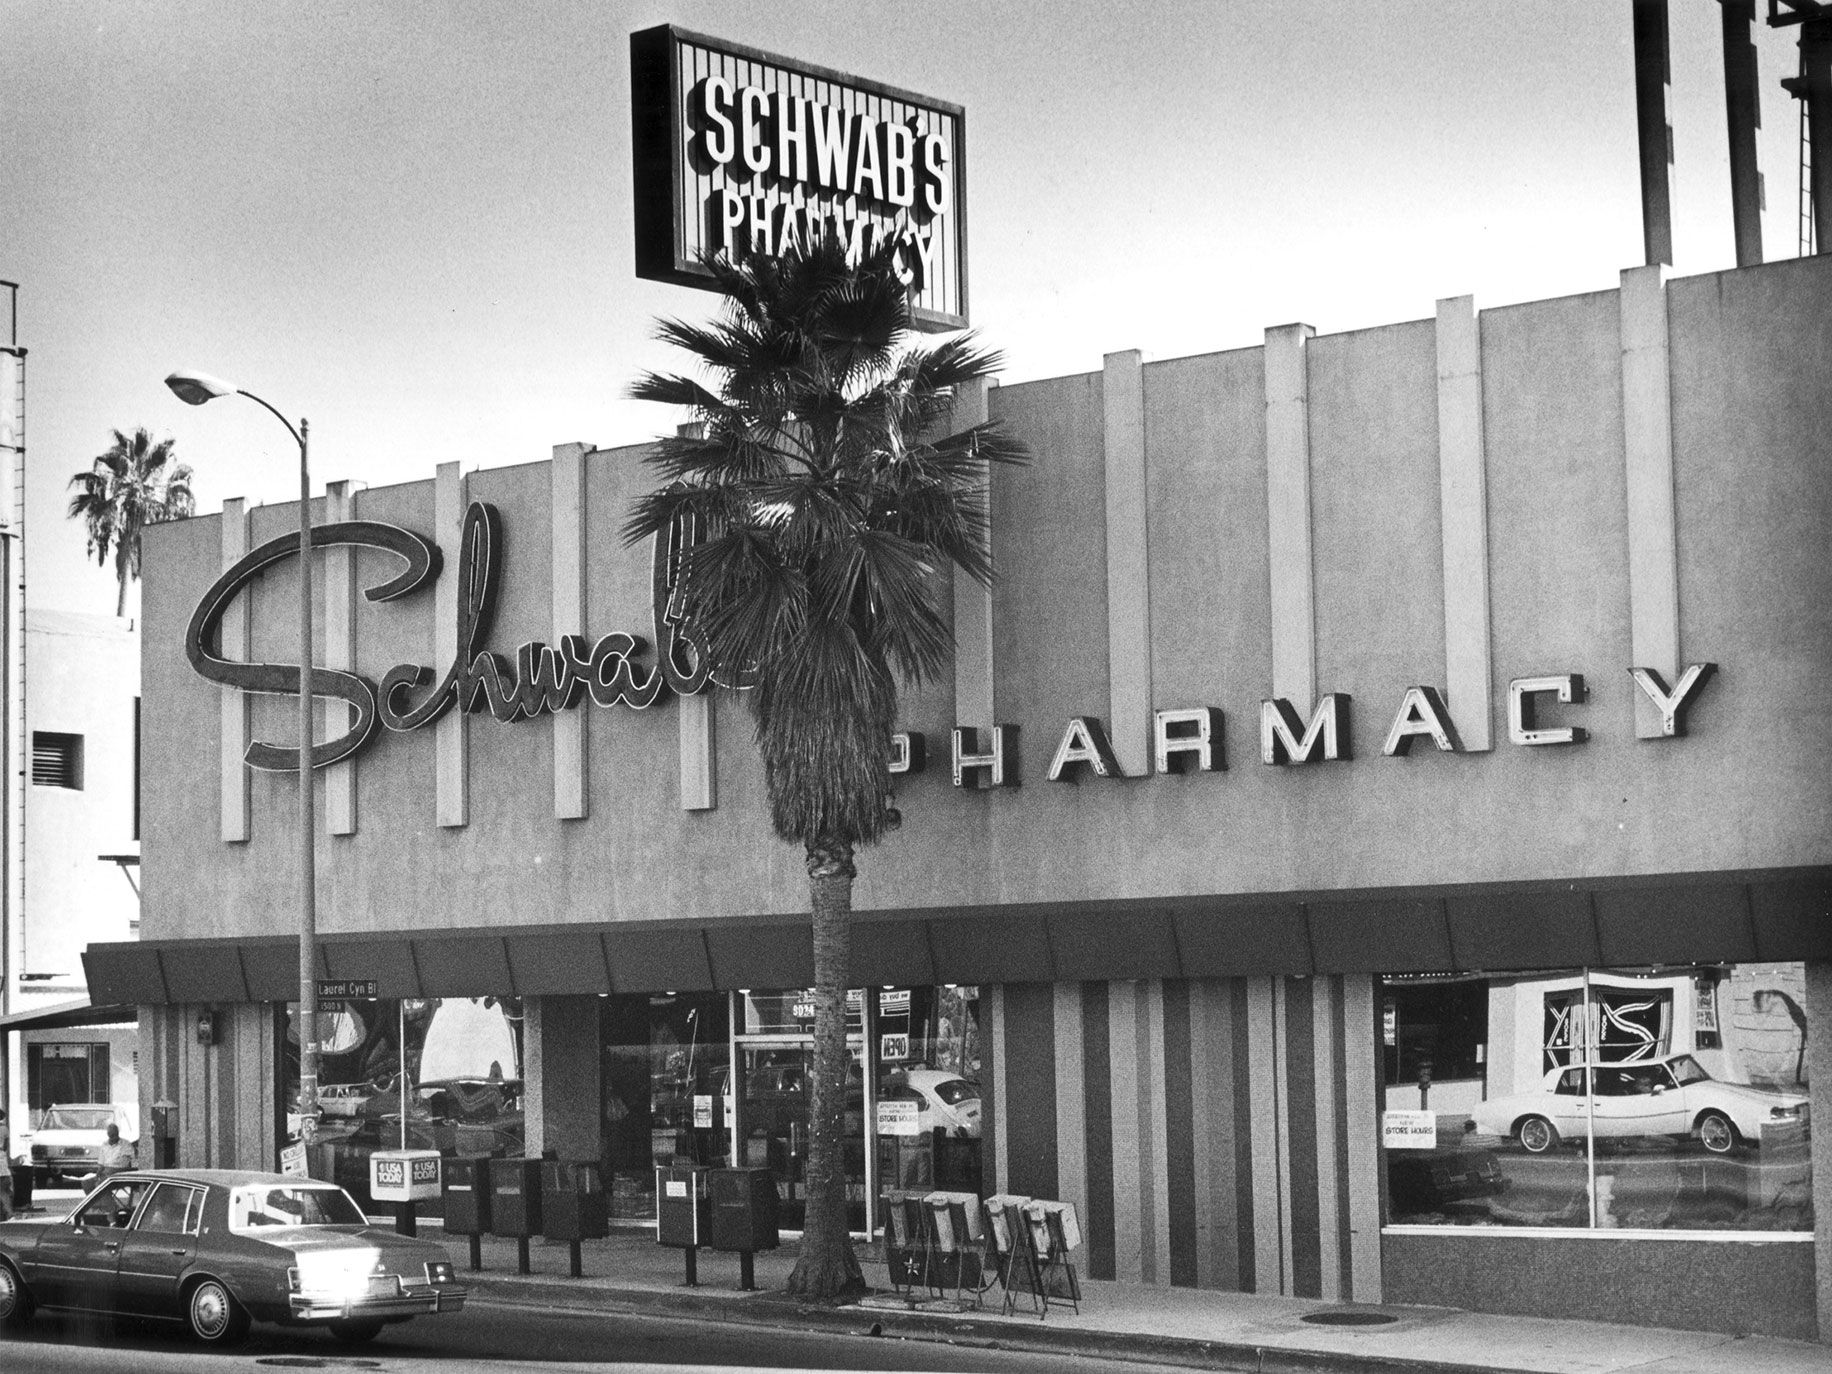 Schwab's Pharmacy on Sunset Boulevard, a hangout of Hollywood stars for 50 years, closed in 1983 and was razed.